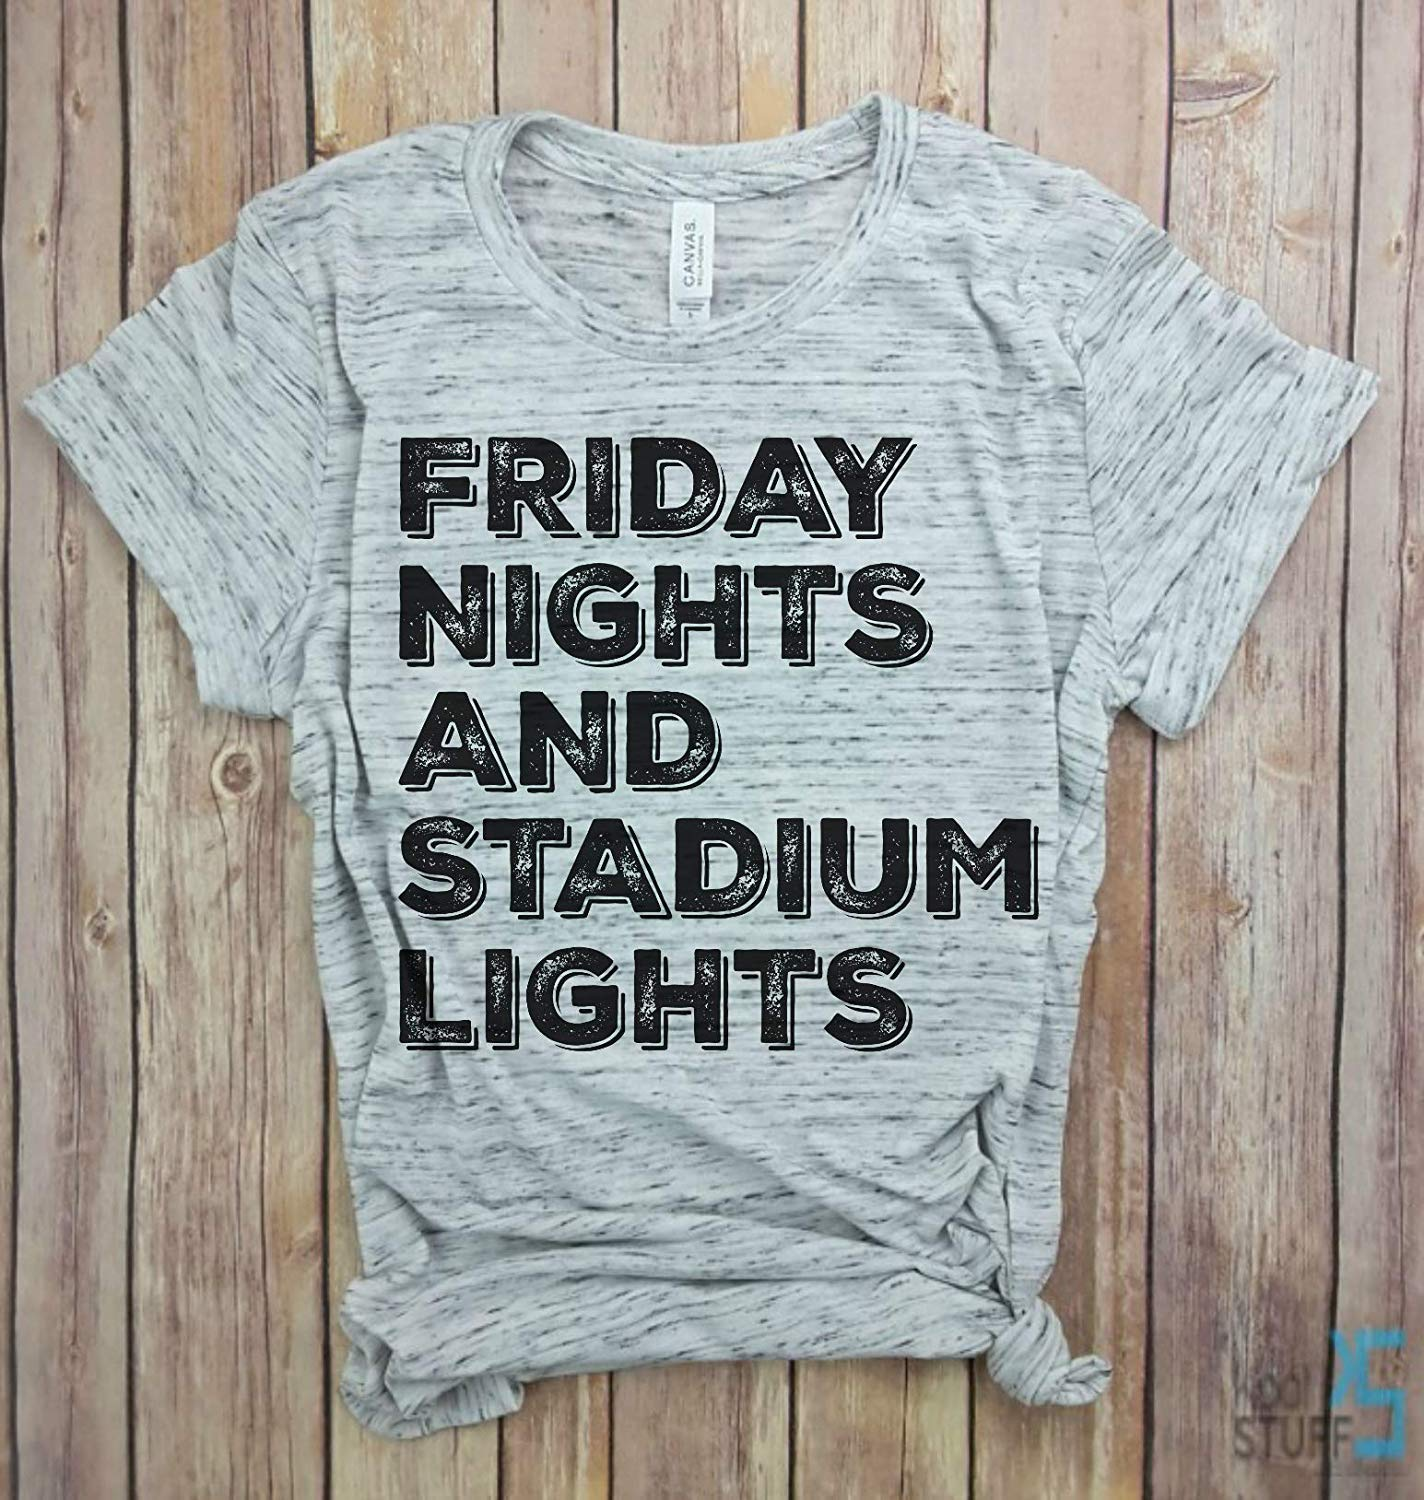 Friday Night Lights and Stadium Lights, Game Day Shirt, Football Tshirt, Football Sunday Shirt, Football Season, Sunday Funday, sorority game day shirt